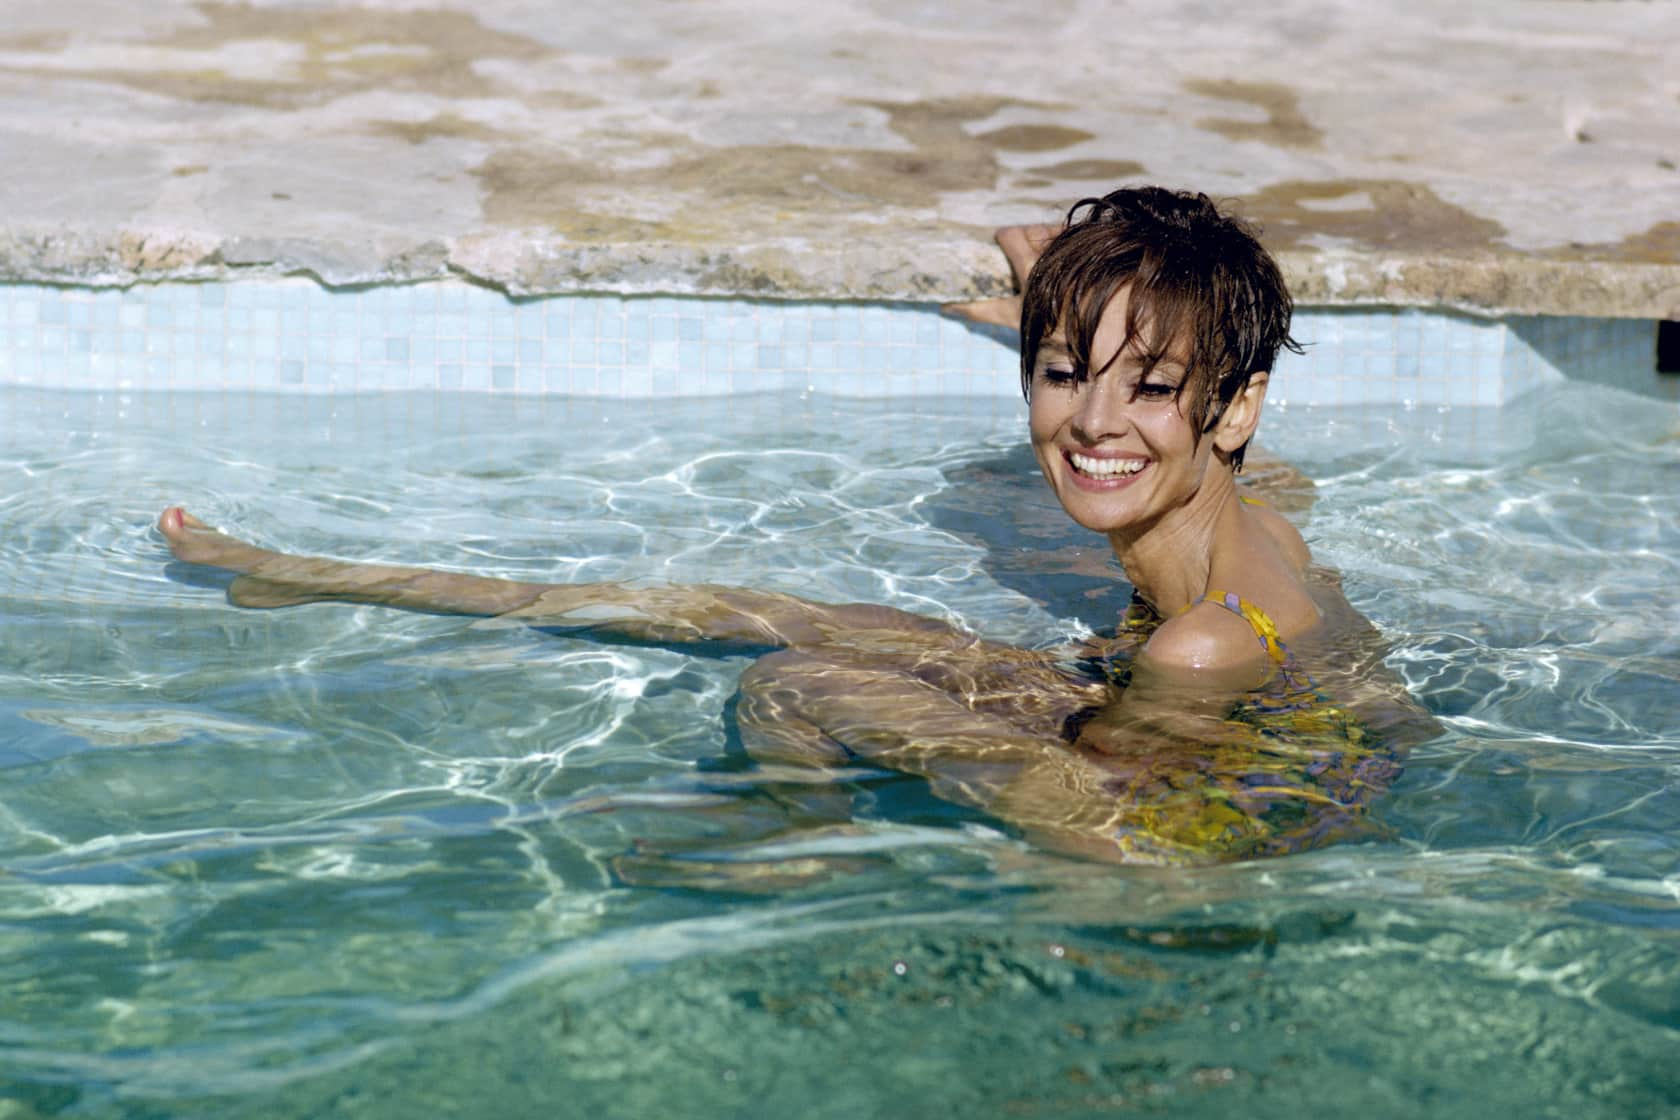 Terry O'Neill Audrey Hepburn, South of France Lifetime C-Type Print